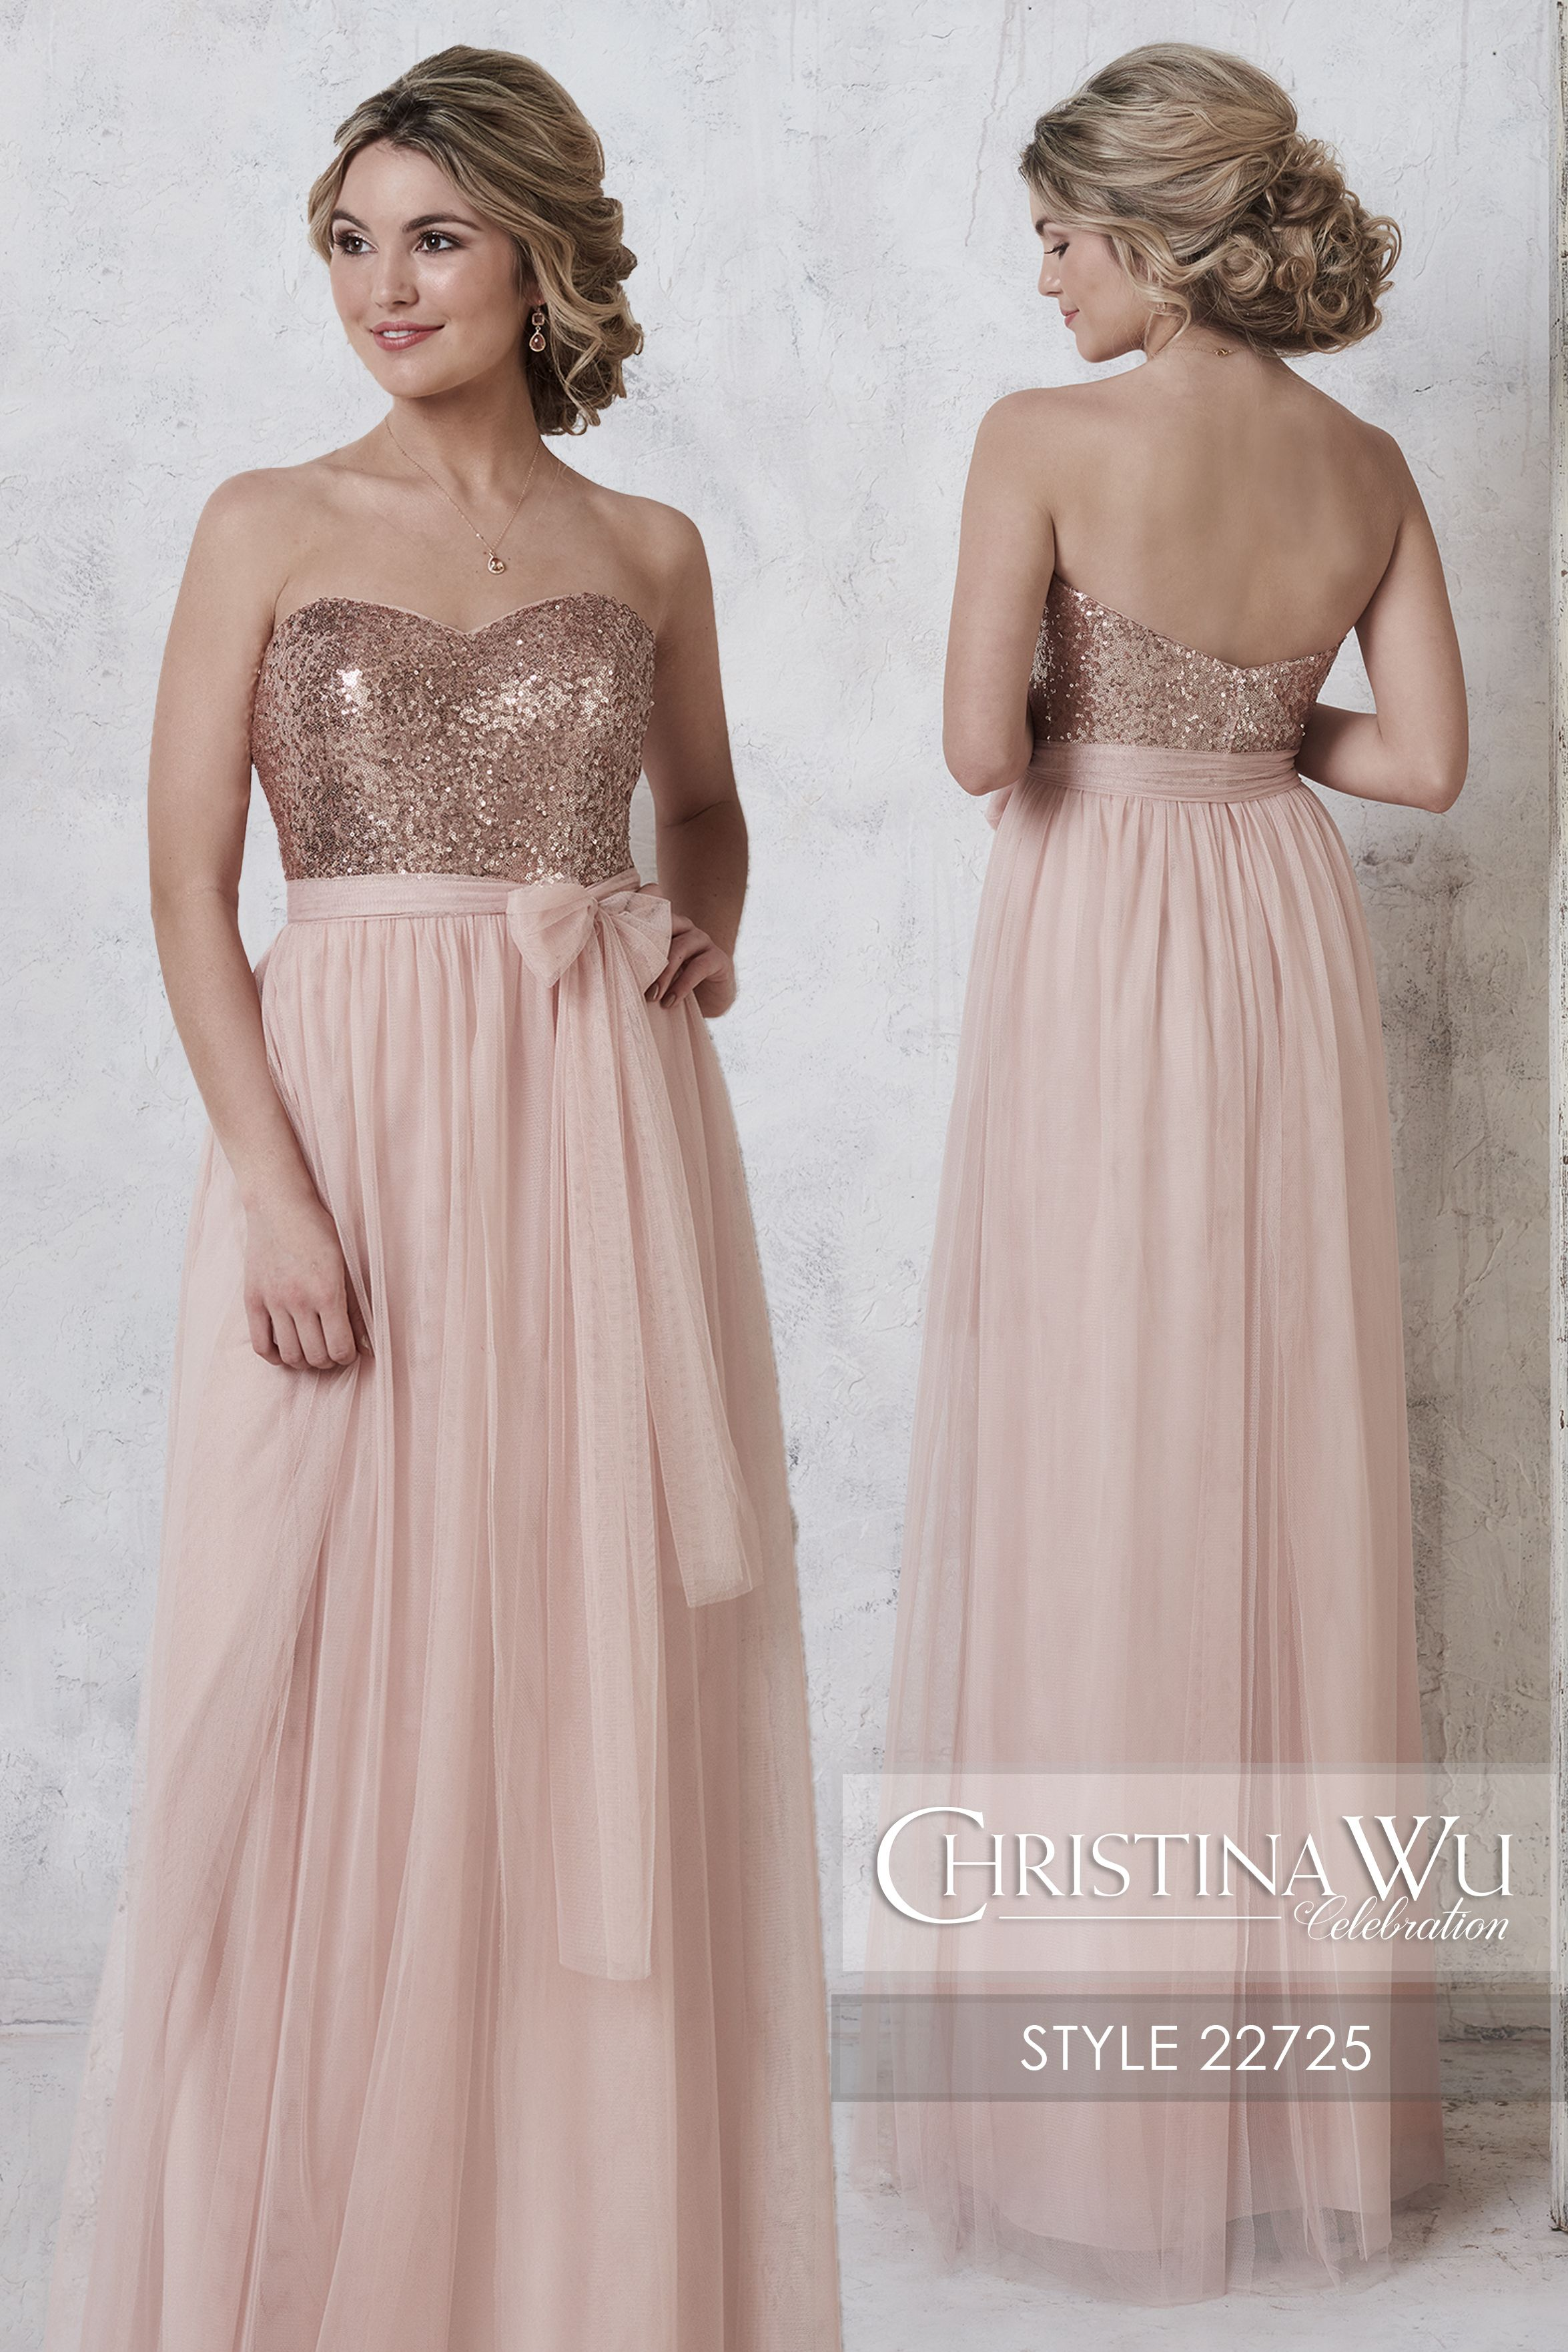 #ChristinaWuCelebration Style 22725 This elegant bridesmaid gown shows off  a fully sequined bodice with a sweetheart neckline.